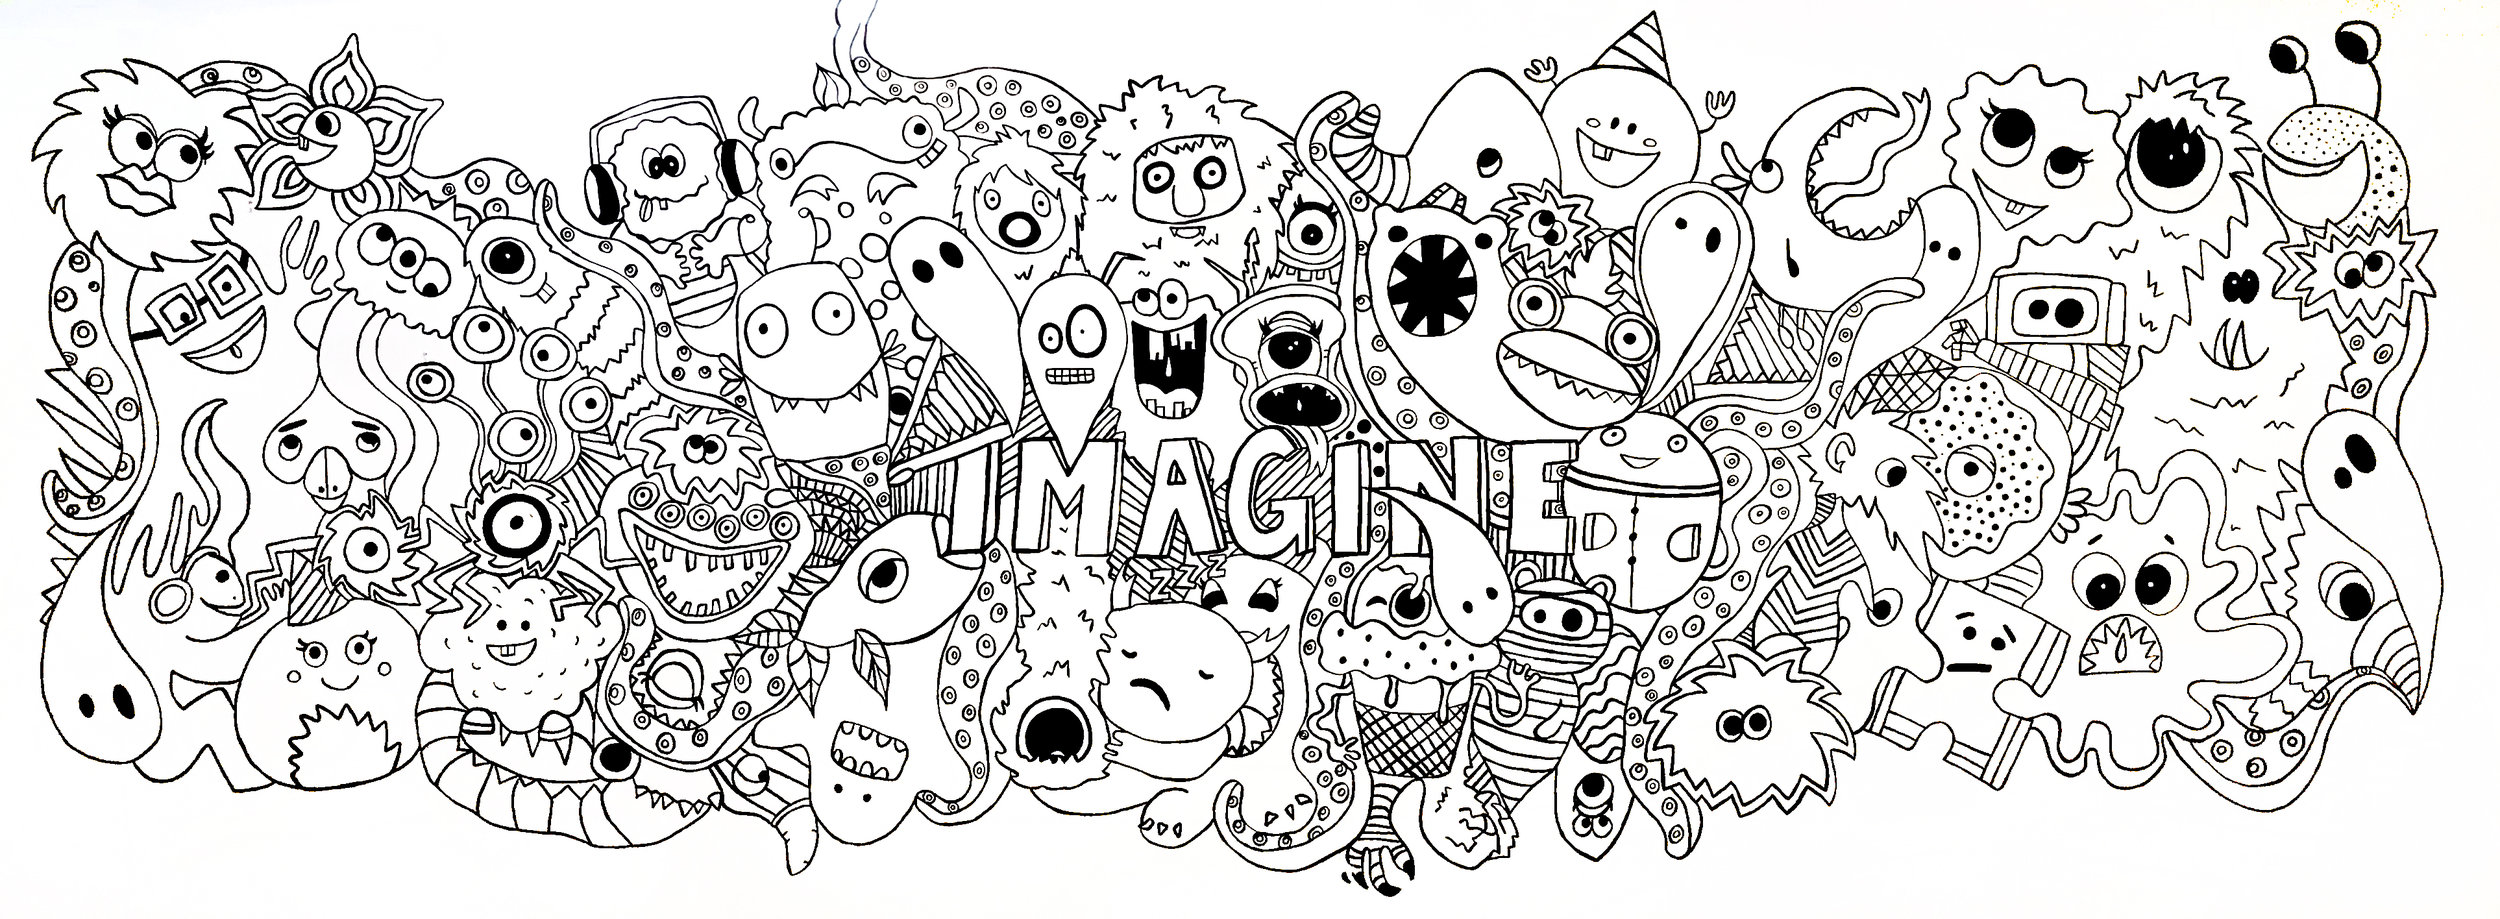 Imagine Mural linework completion before students filled in.